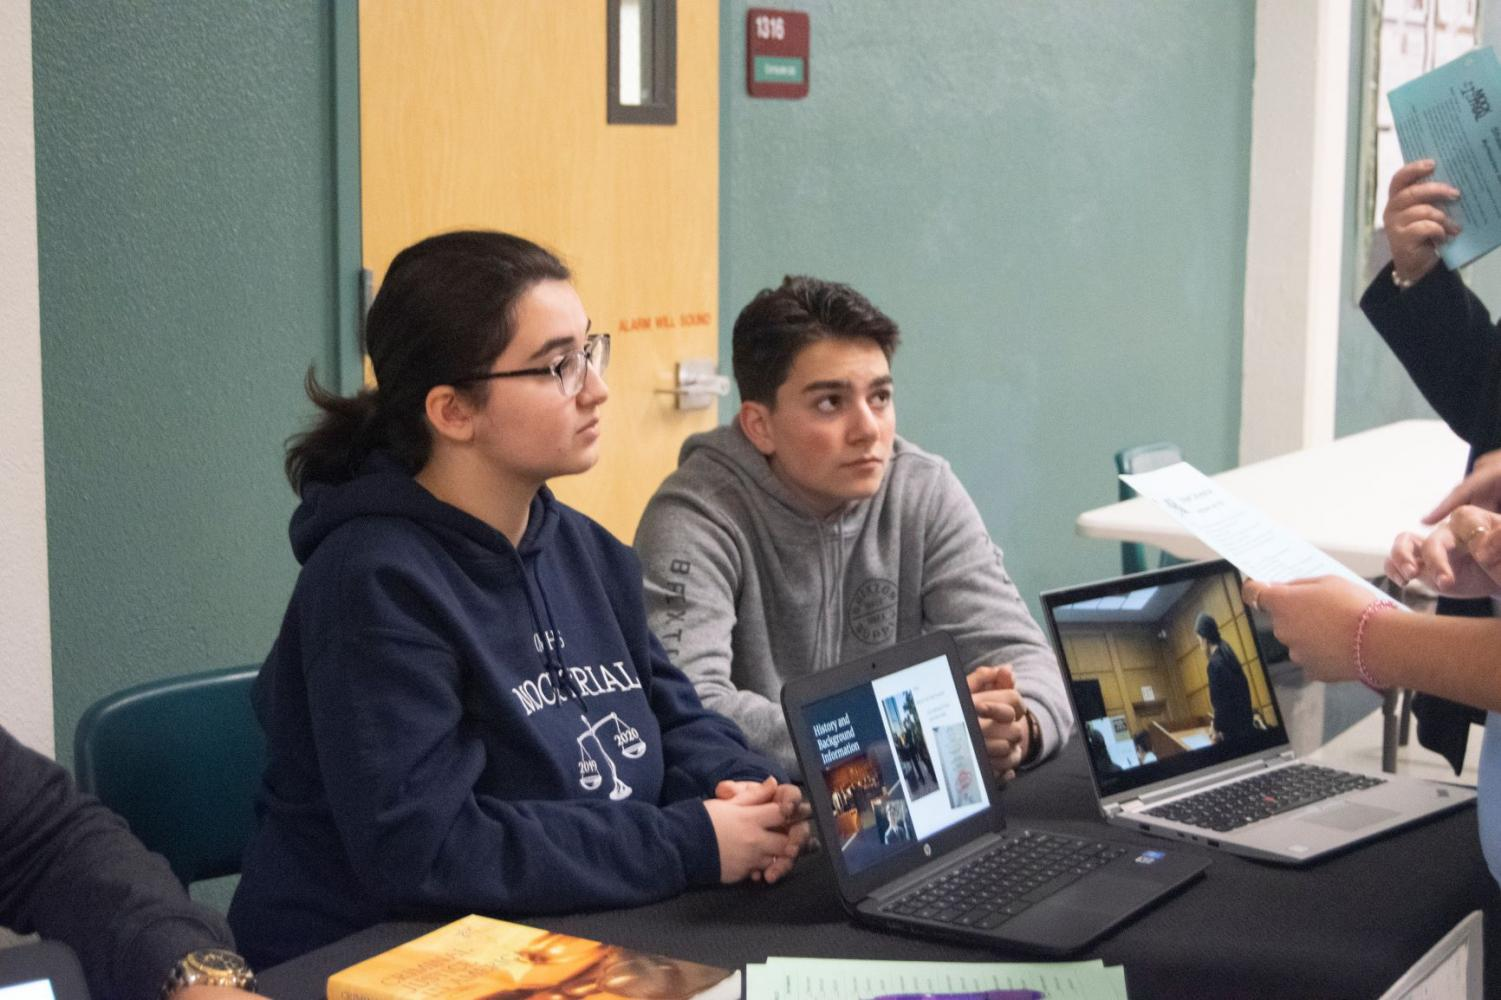 Students represented Clark for everyone as they spoke to curious parents and professionally explained classes.